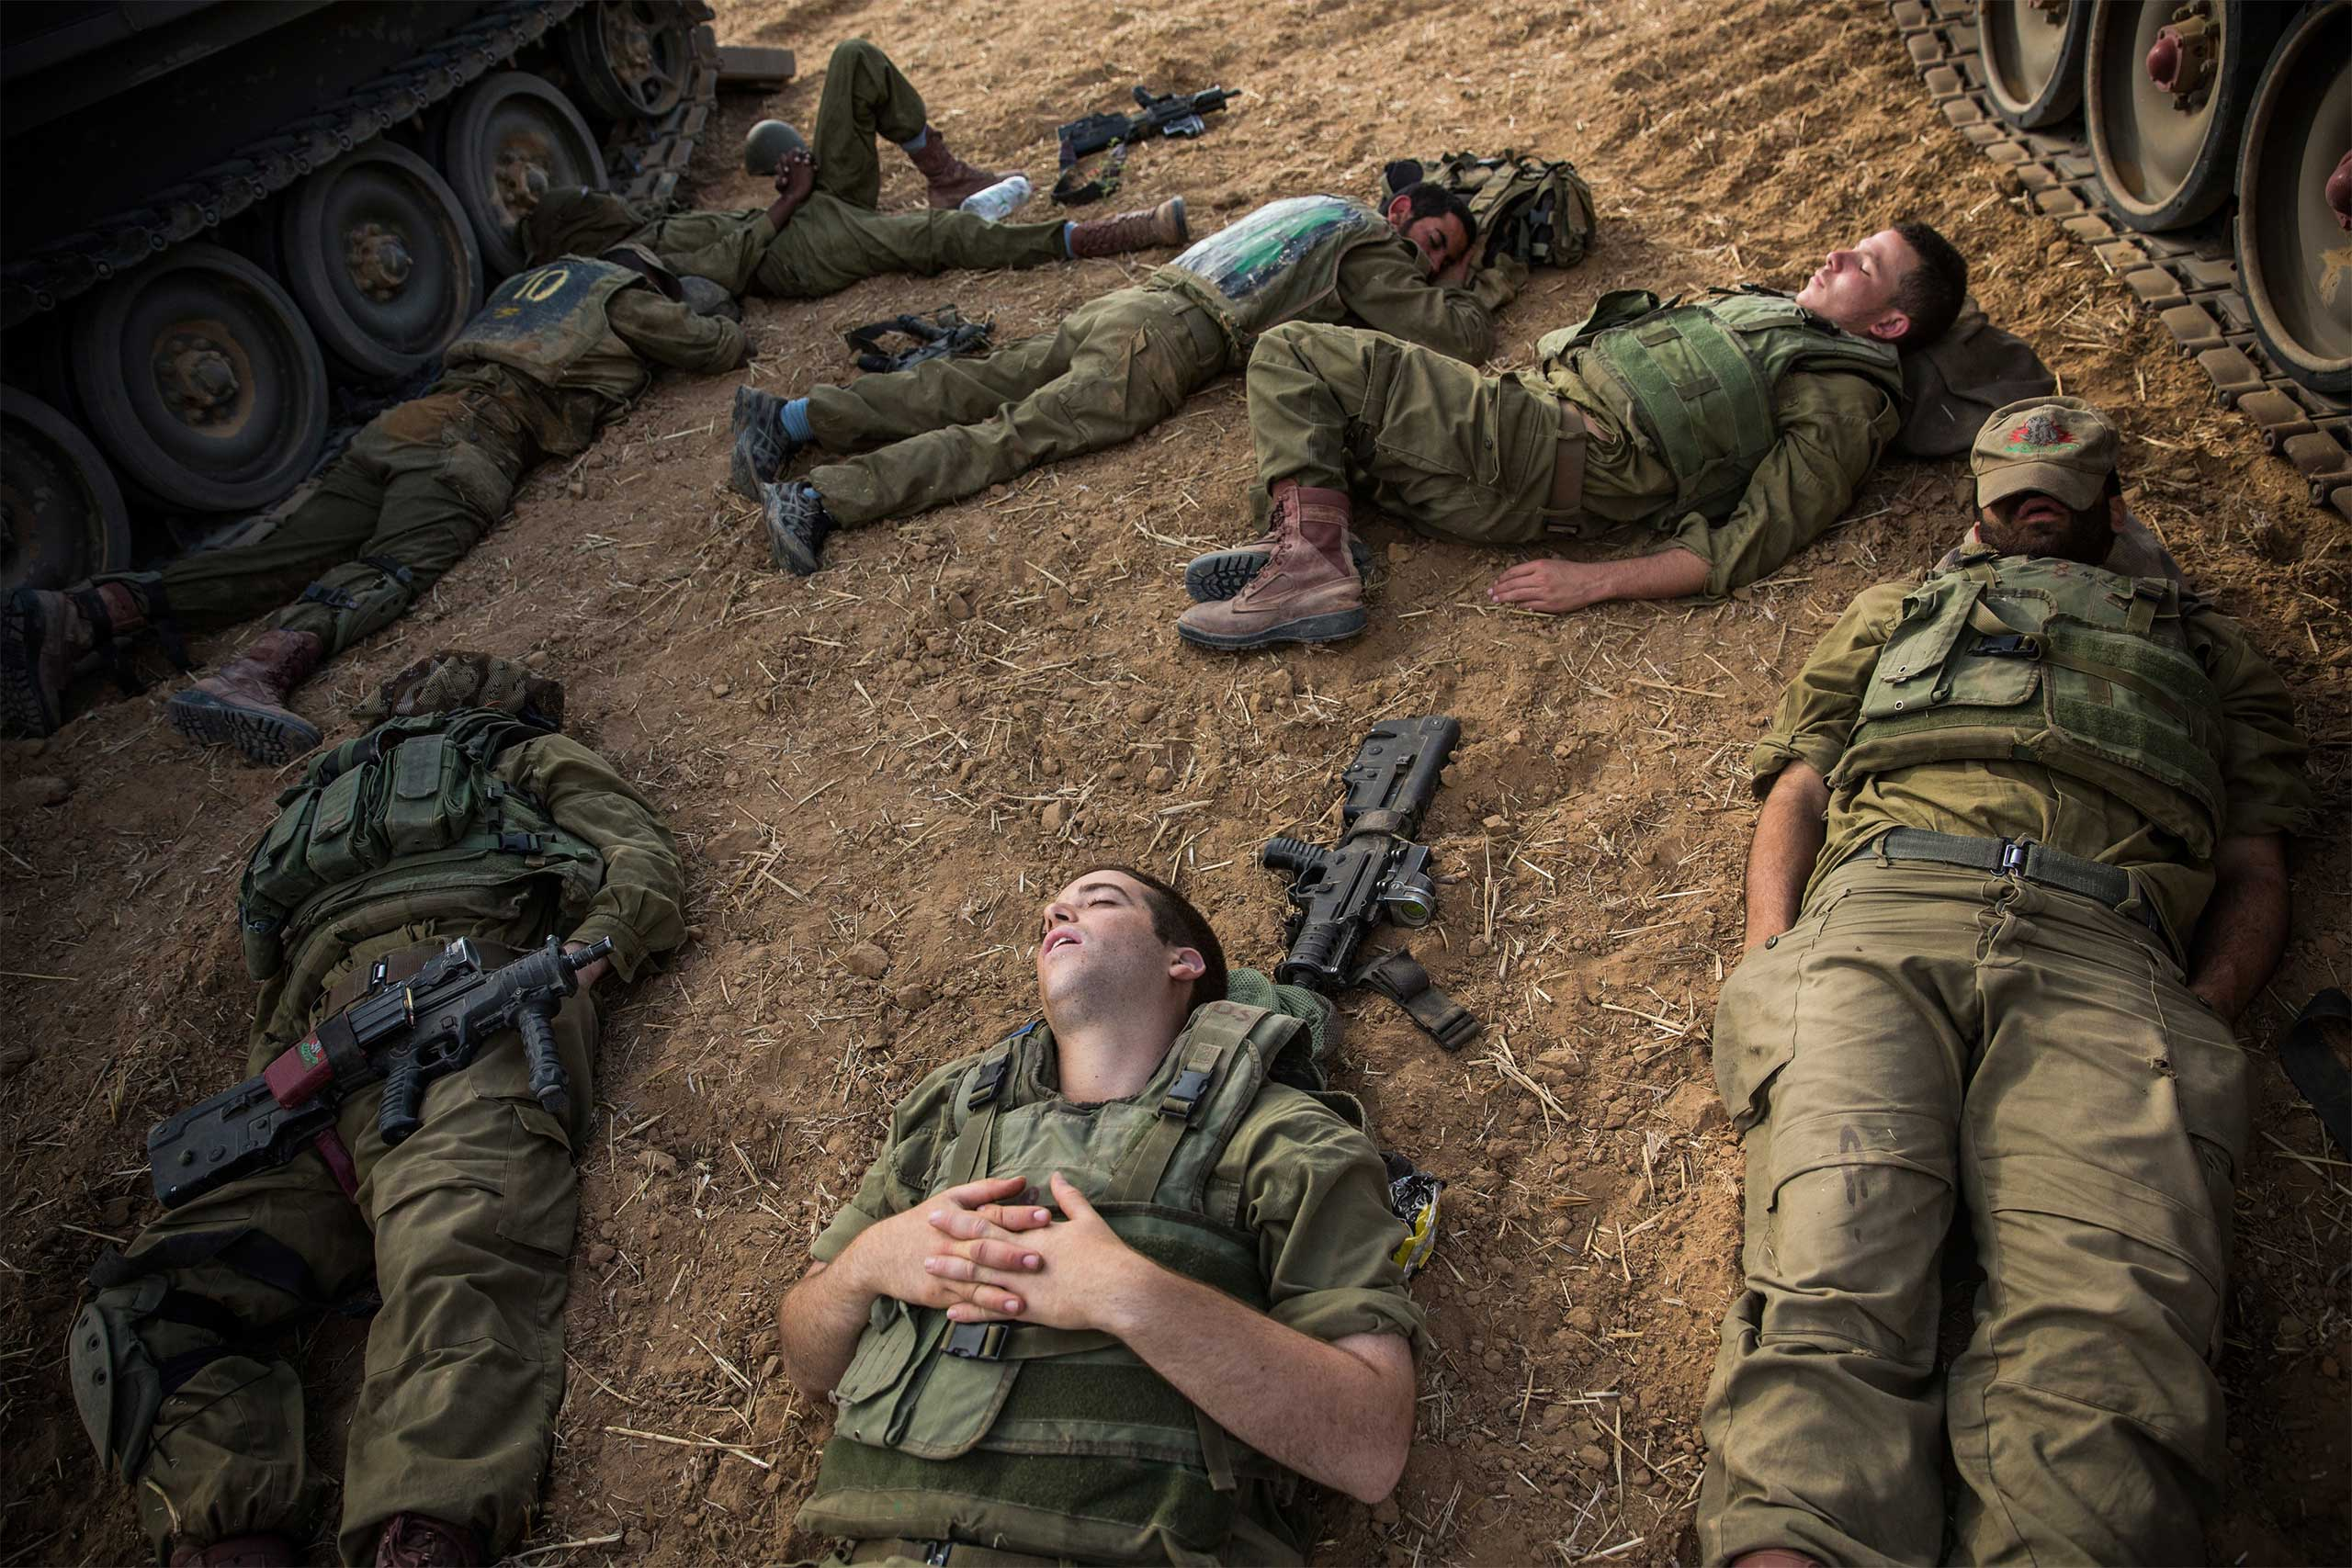 Israeli soldiers sleep next to armored personnel carriers close to the Israel-Gaza border near Sderot, Israel, July 15, 2014.